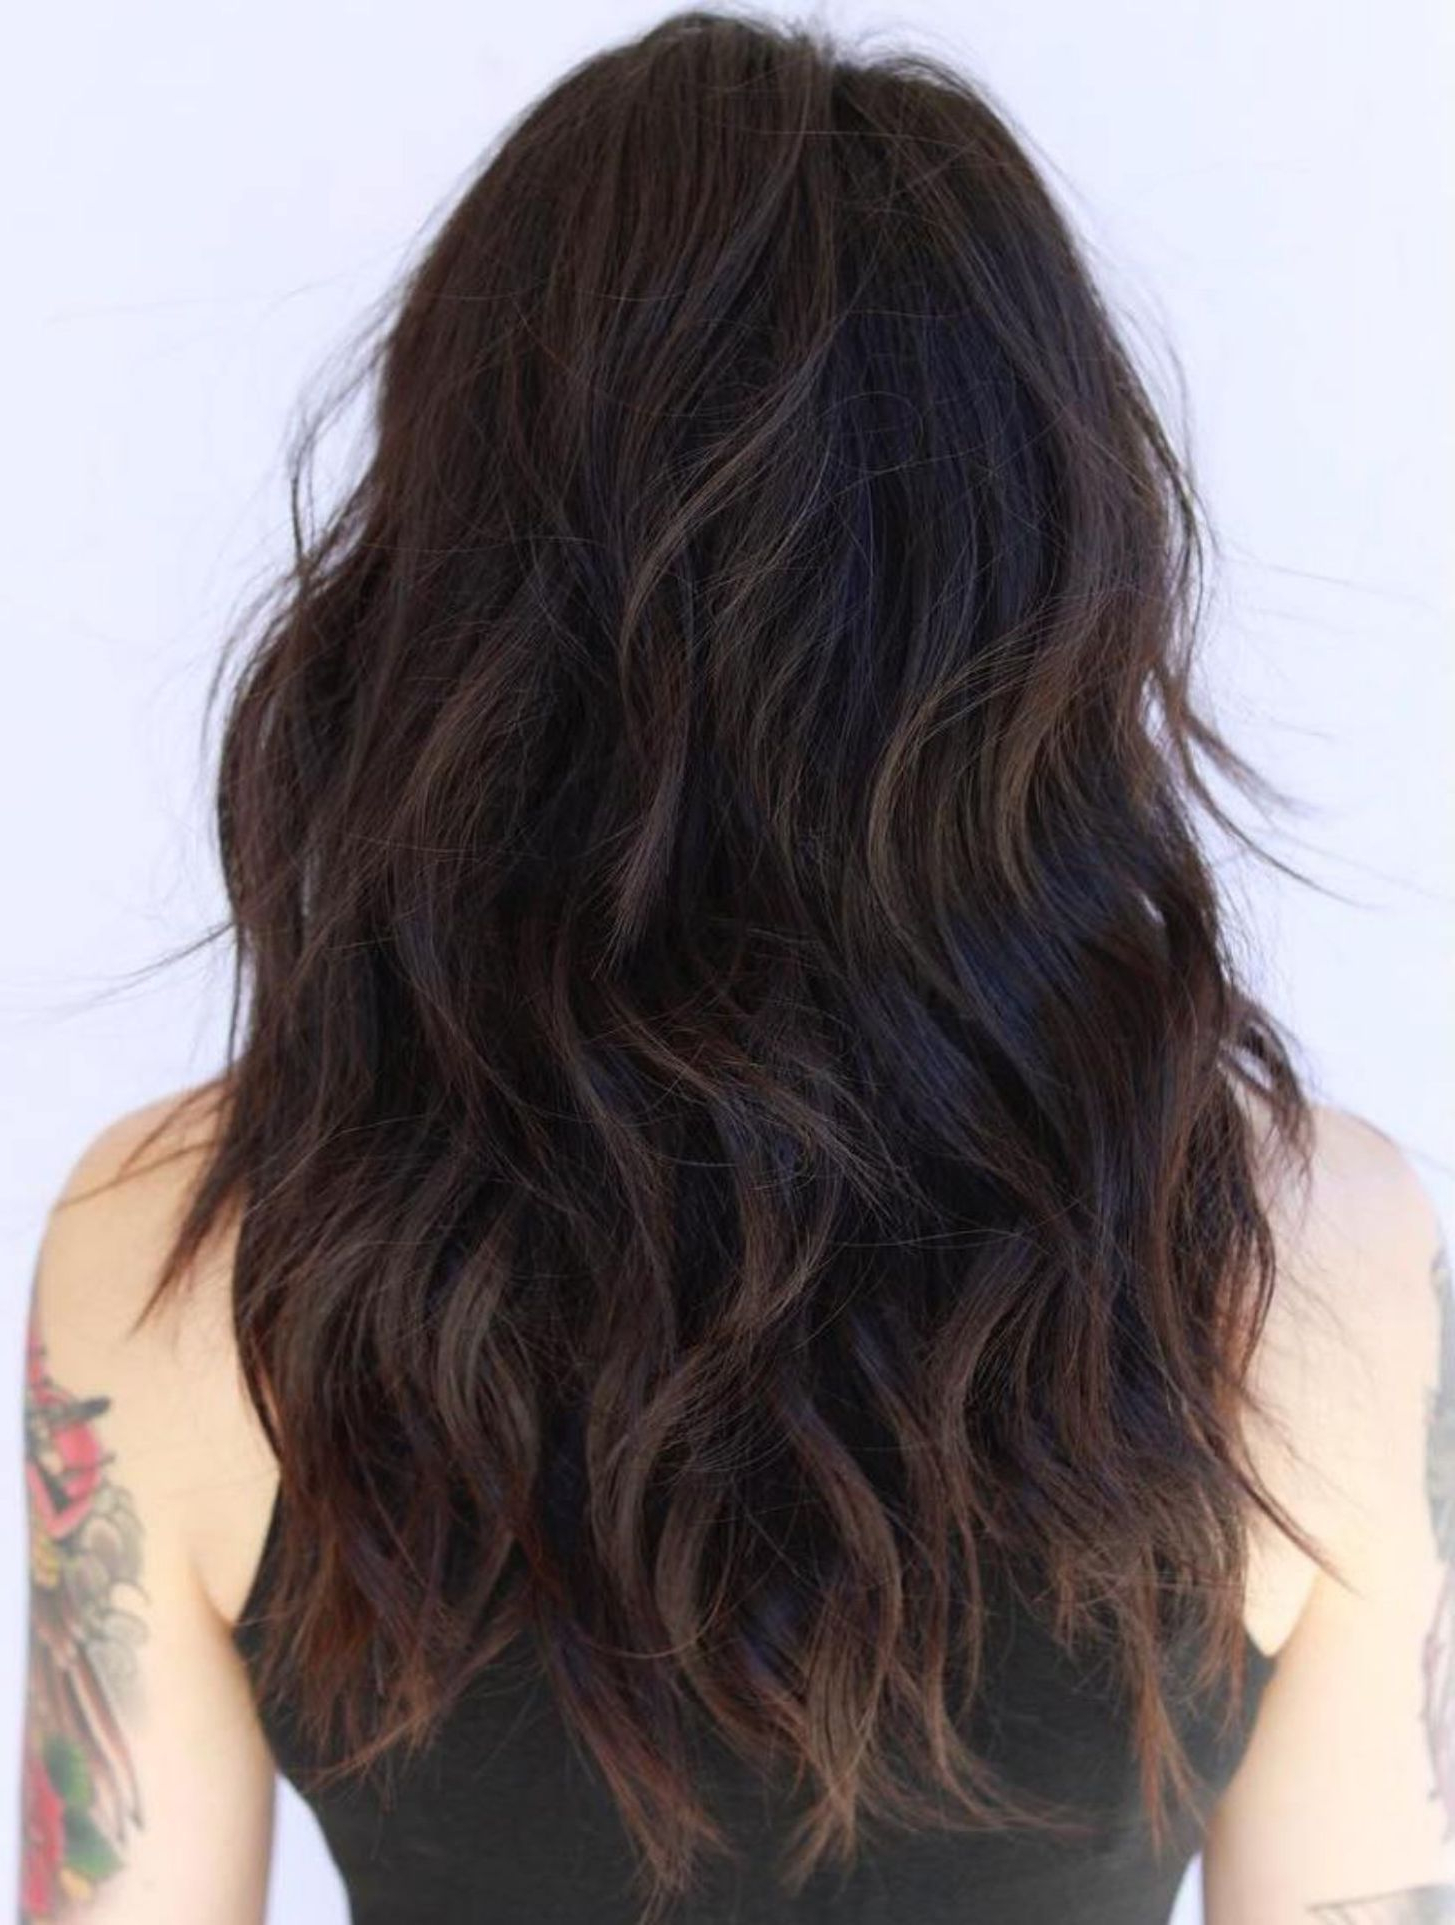 50 Lovely Long Shag Haircuts For Effortless Stylish Looks In 2019 Within Fashionable Bedhead Layers For Long Hairstyles (View 5 of 20)